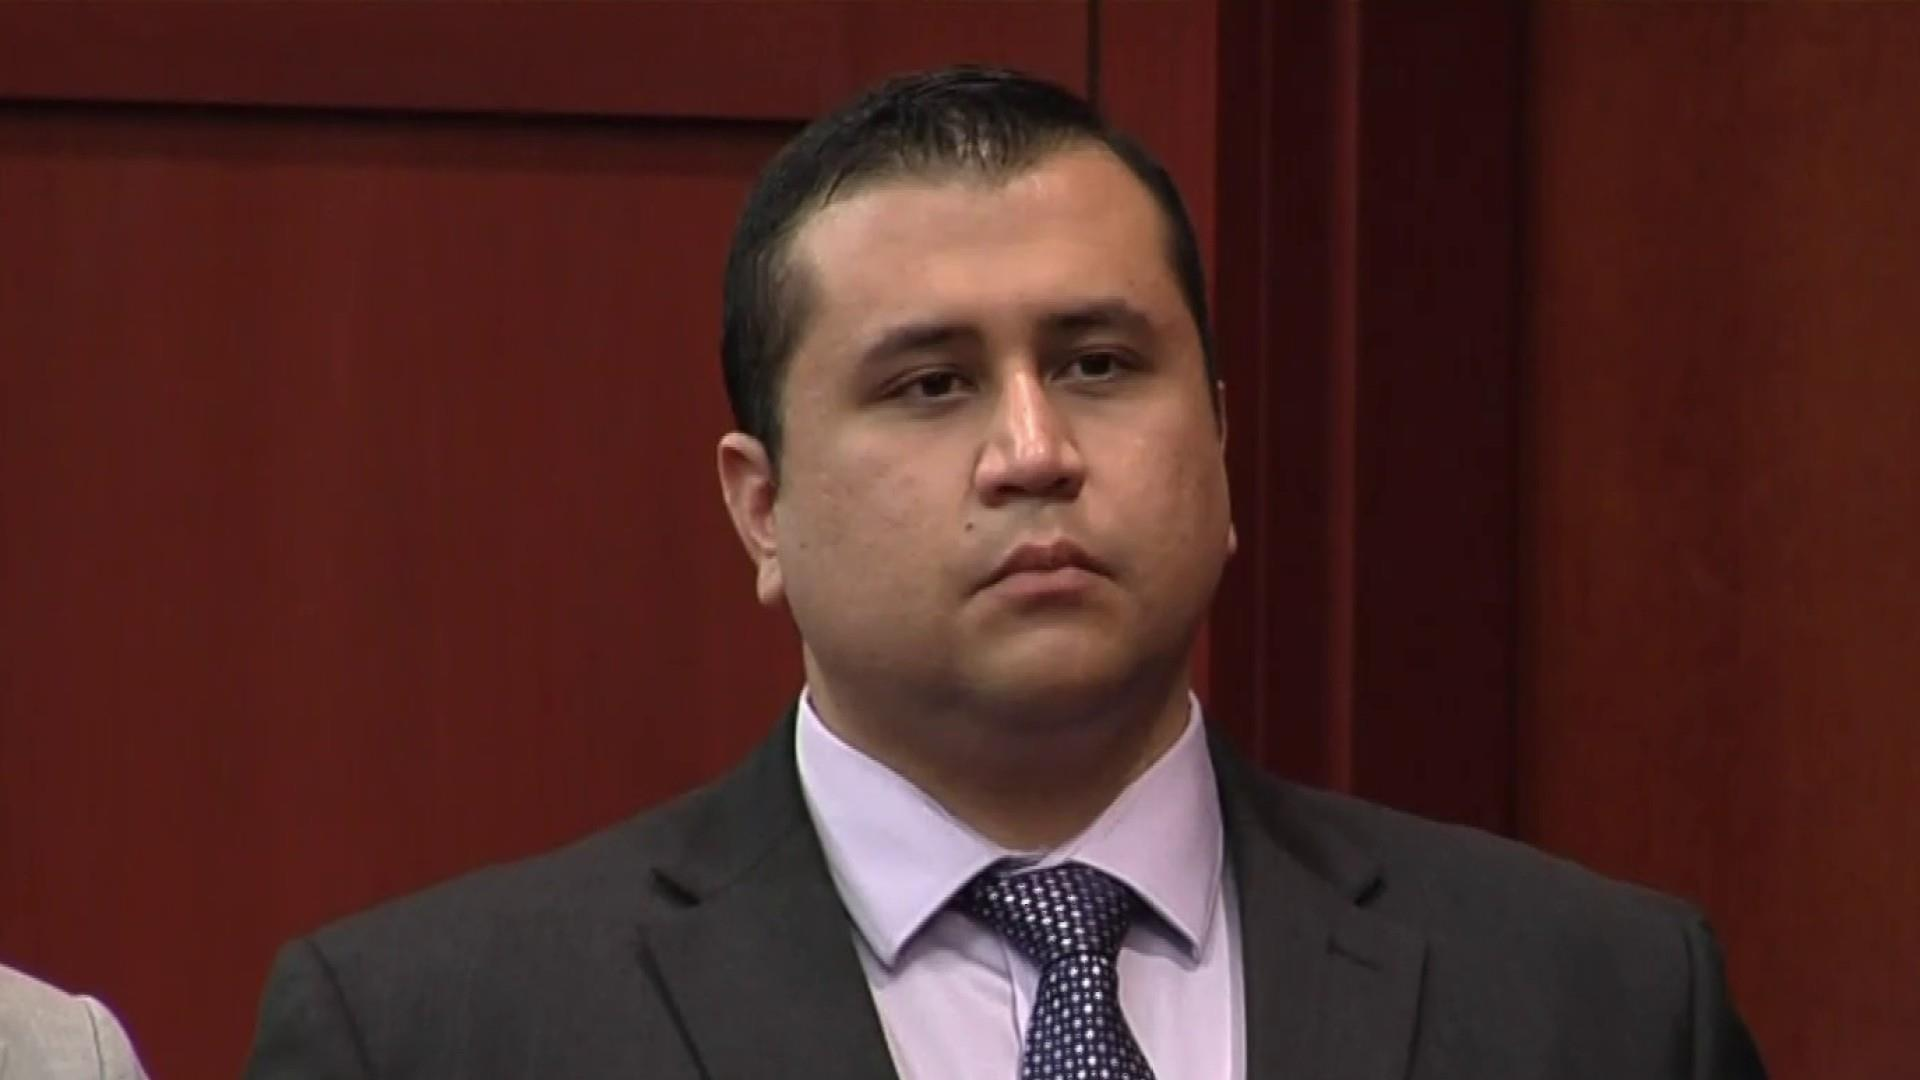 George Zimmerman sues Trayvon Martin's family for $100 million in damages